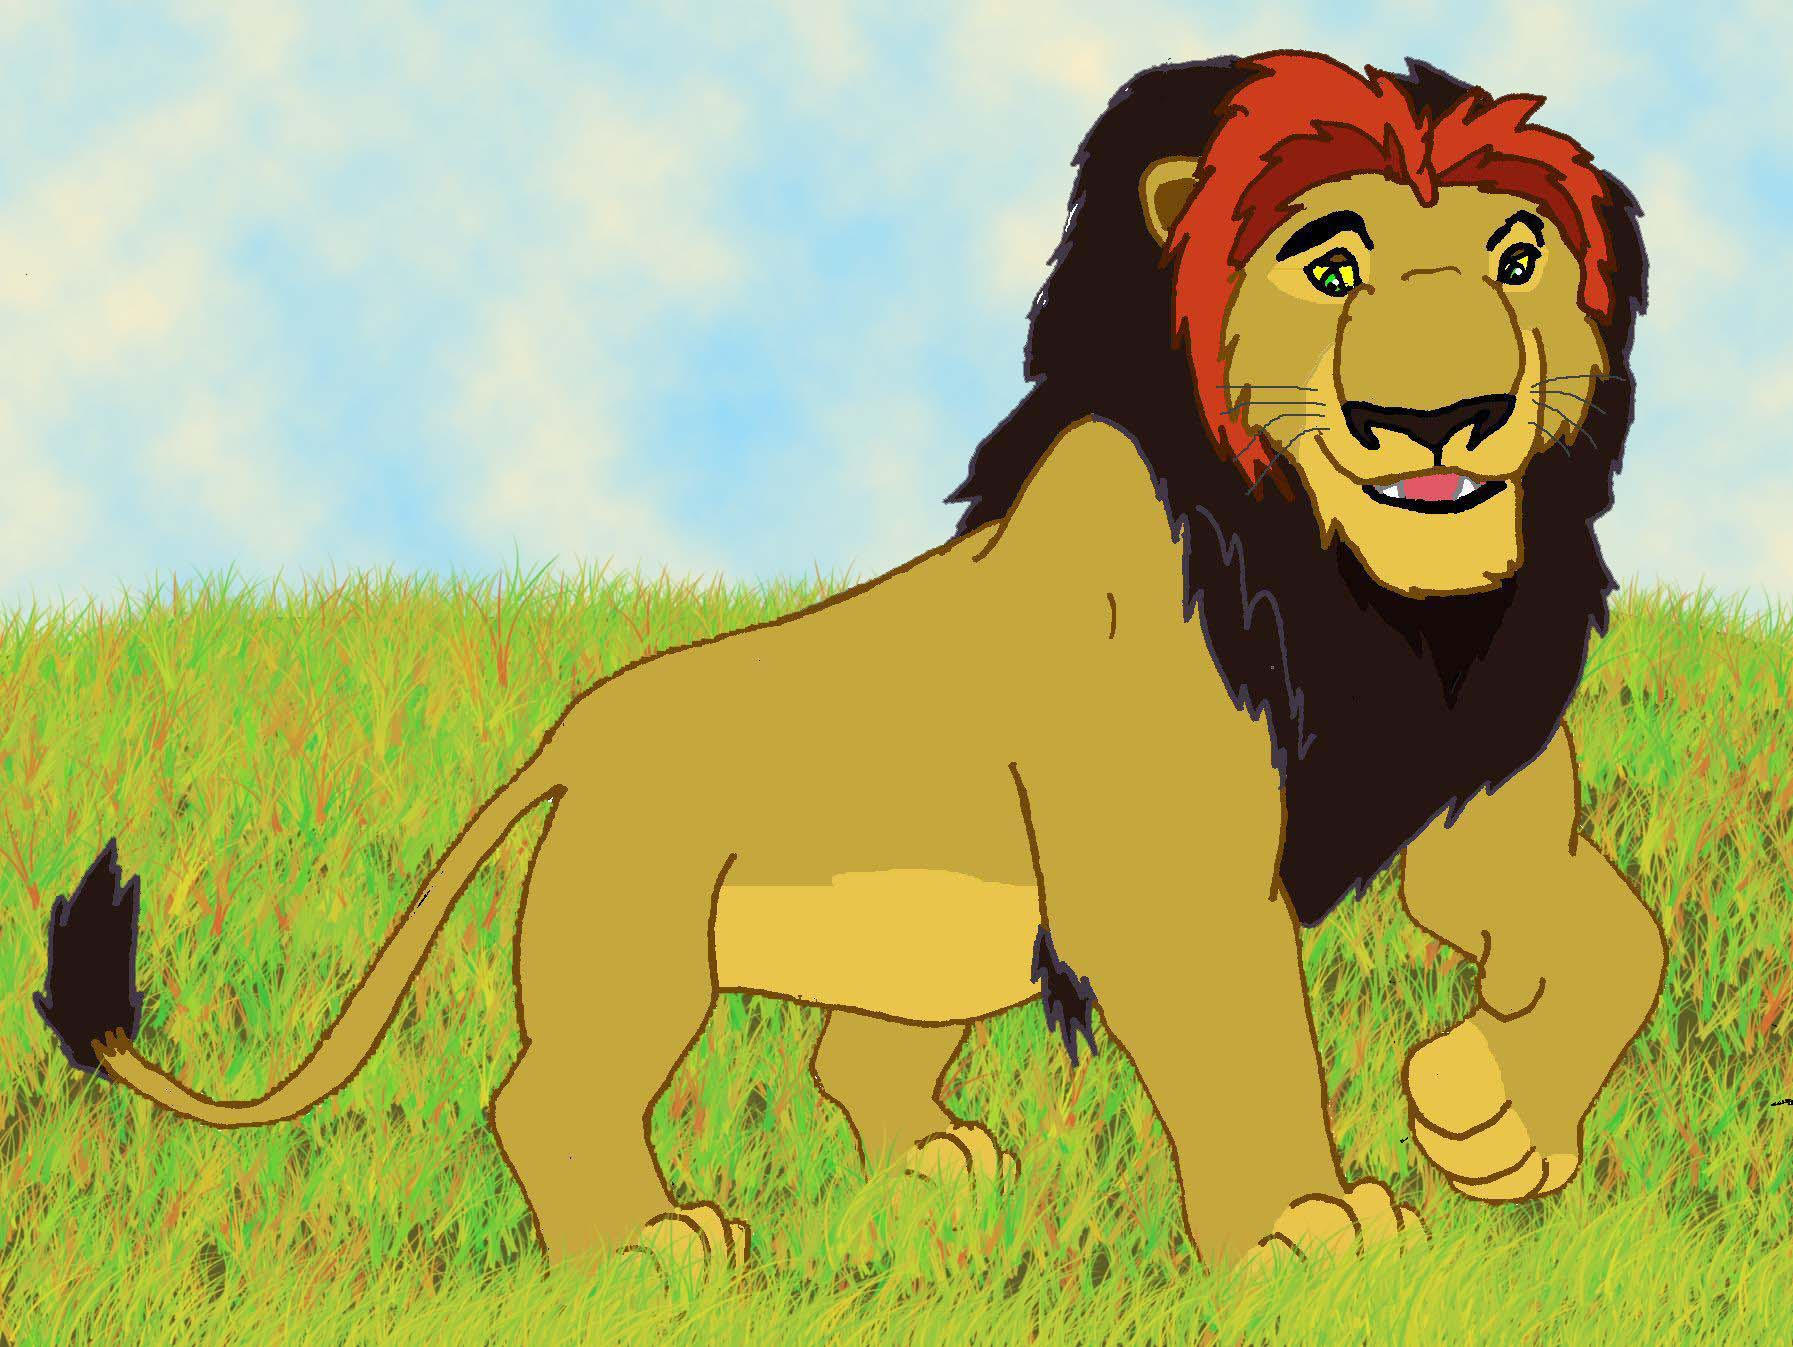 Mufasa and Scar's Father by theblazinggecko on DeviantArt